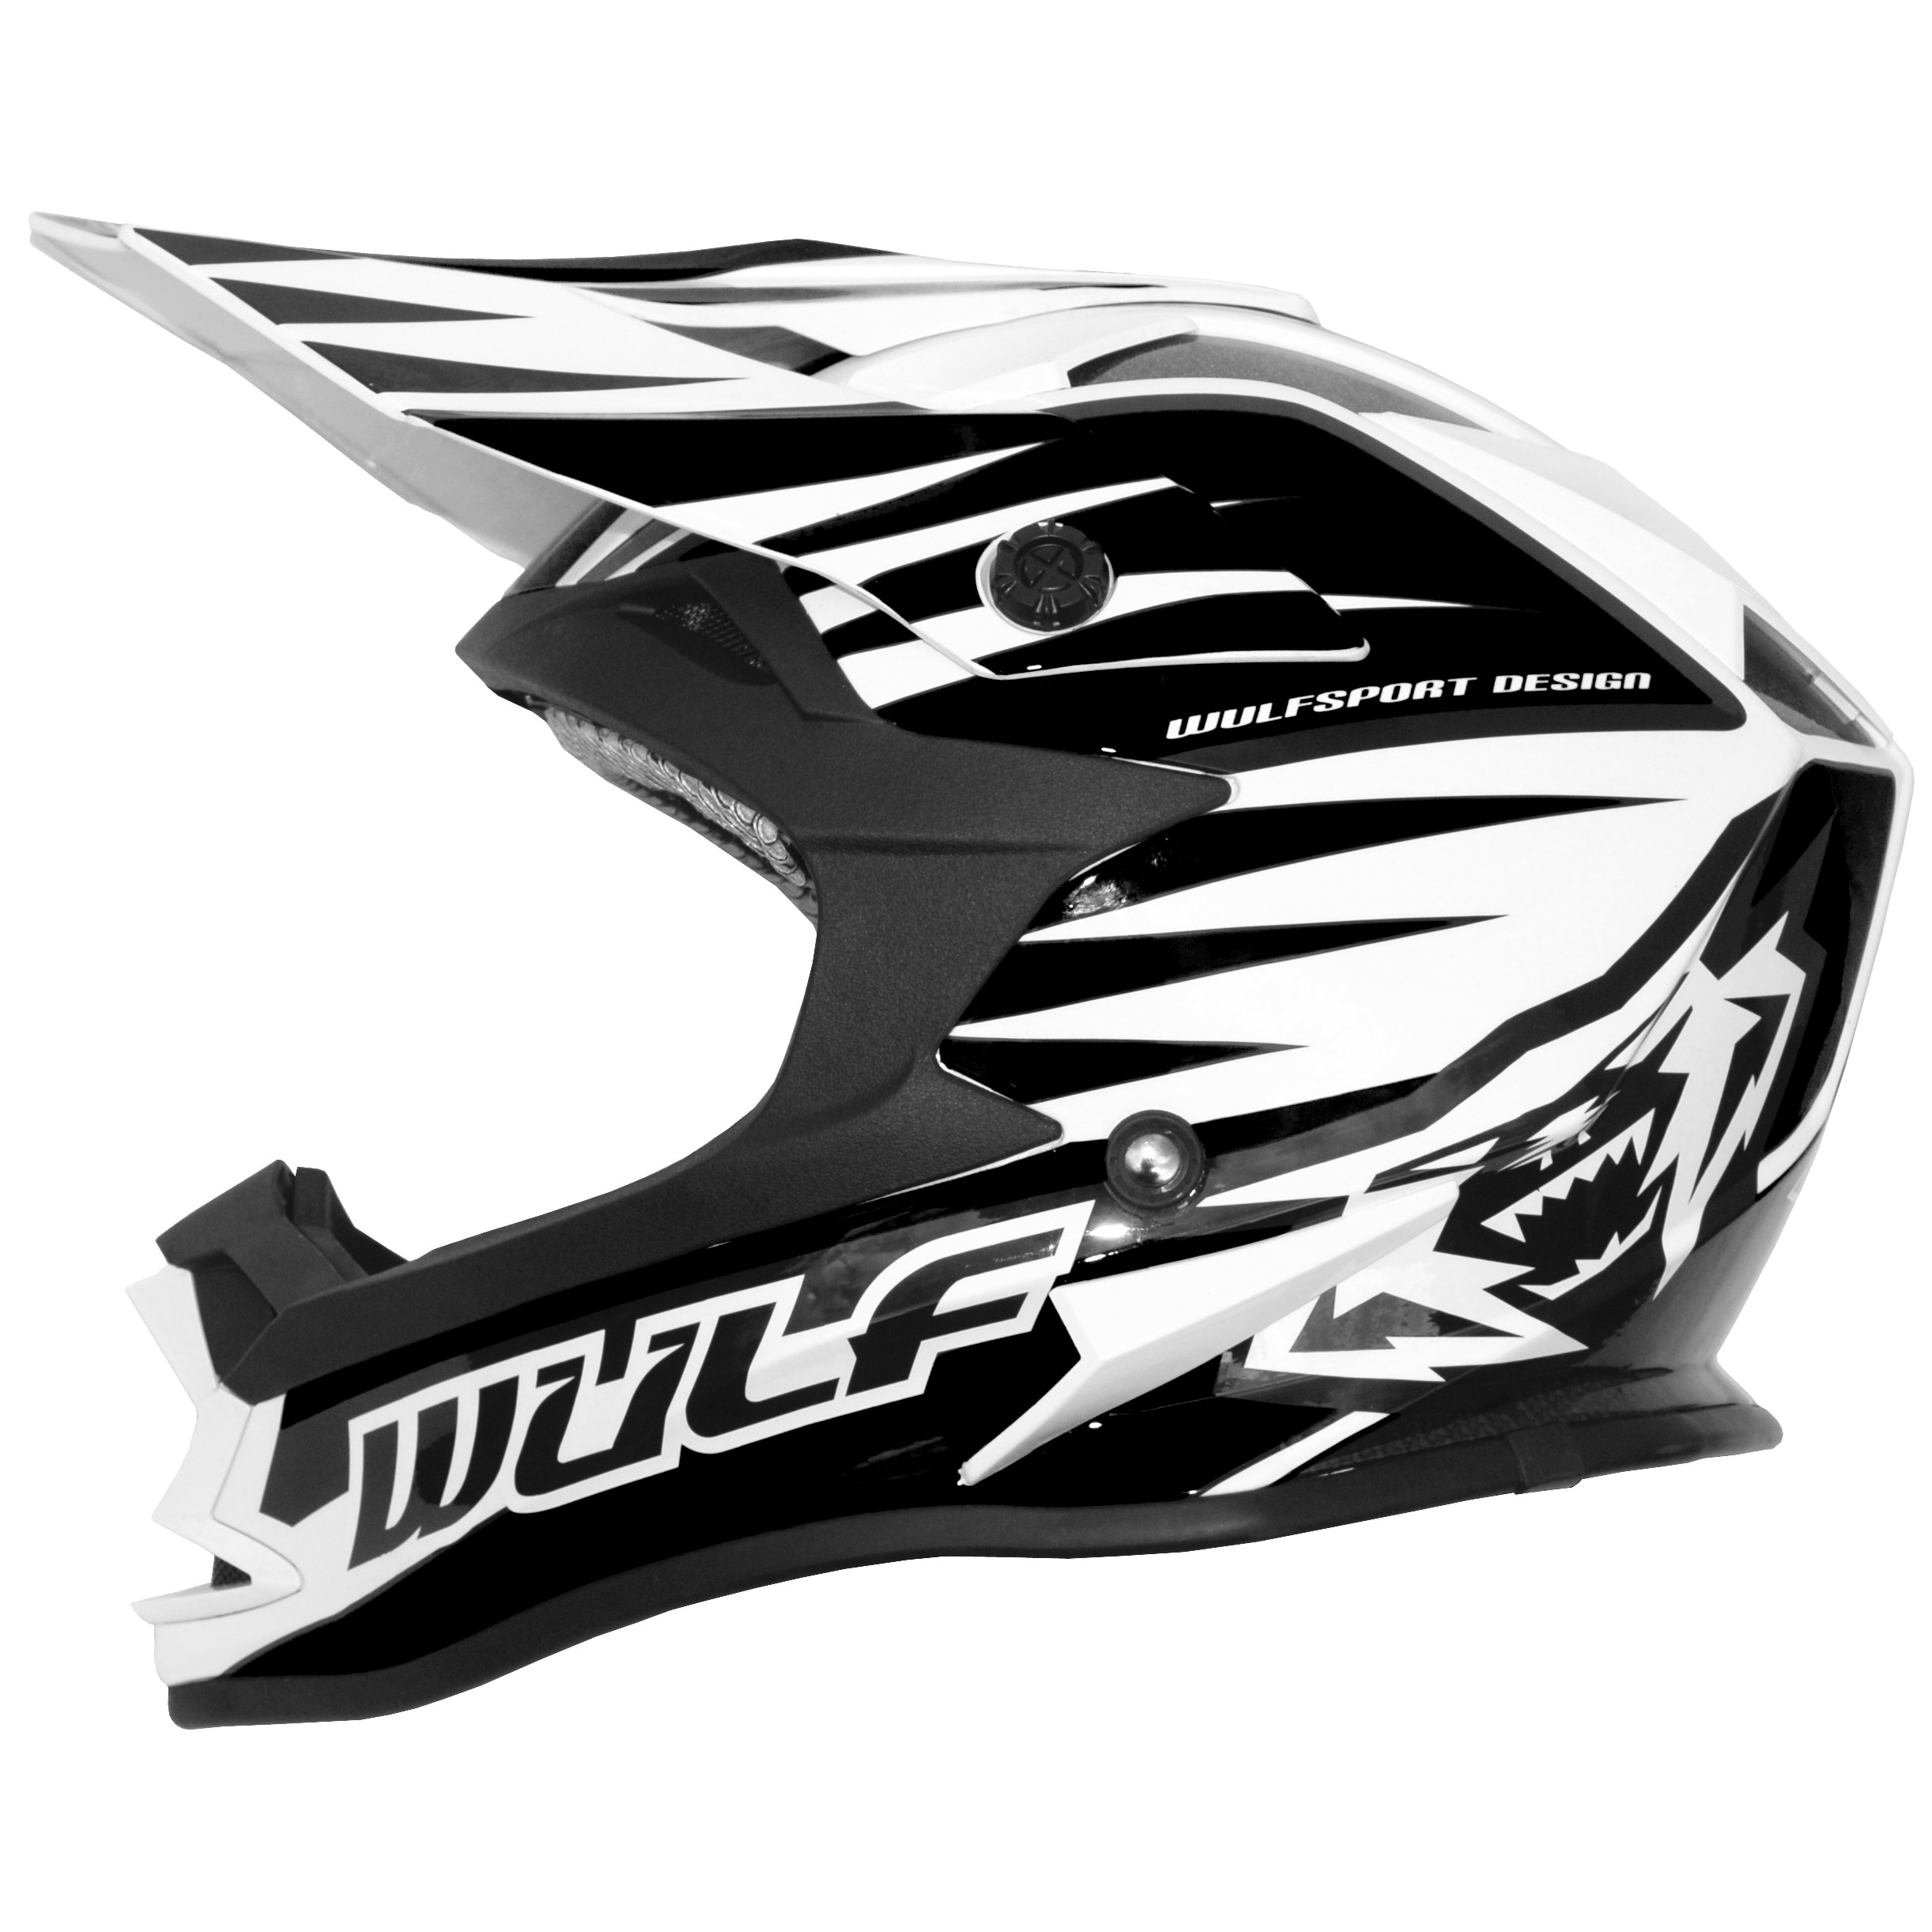 CASQUE ENFANT MOTO CROSS WULFSPORT ADVANCE NOIR BLANC YS a YXL